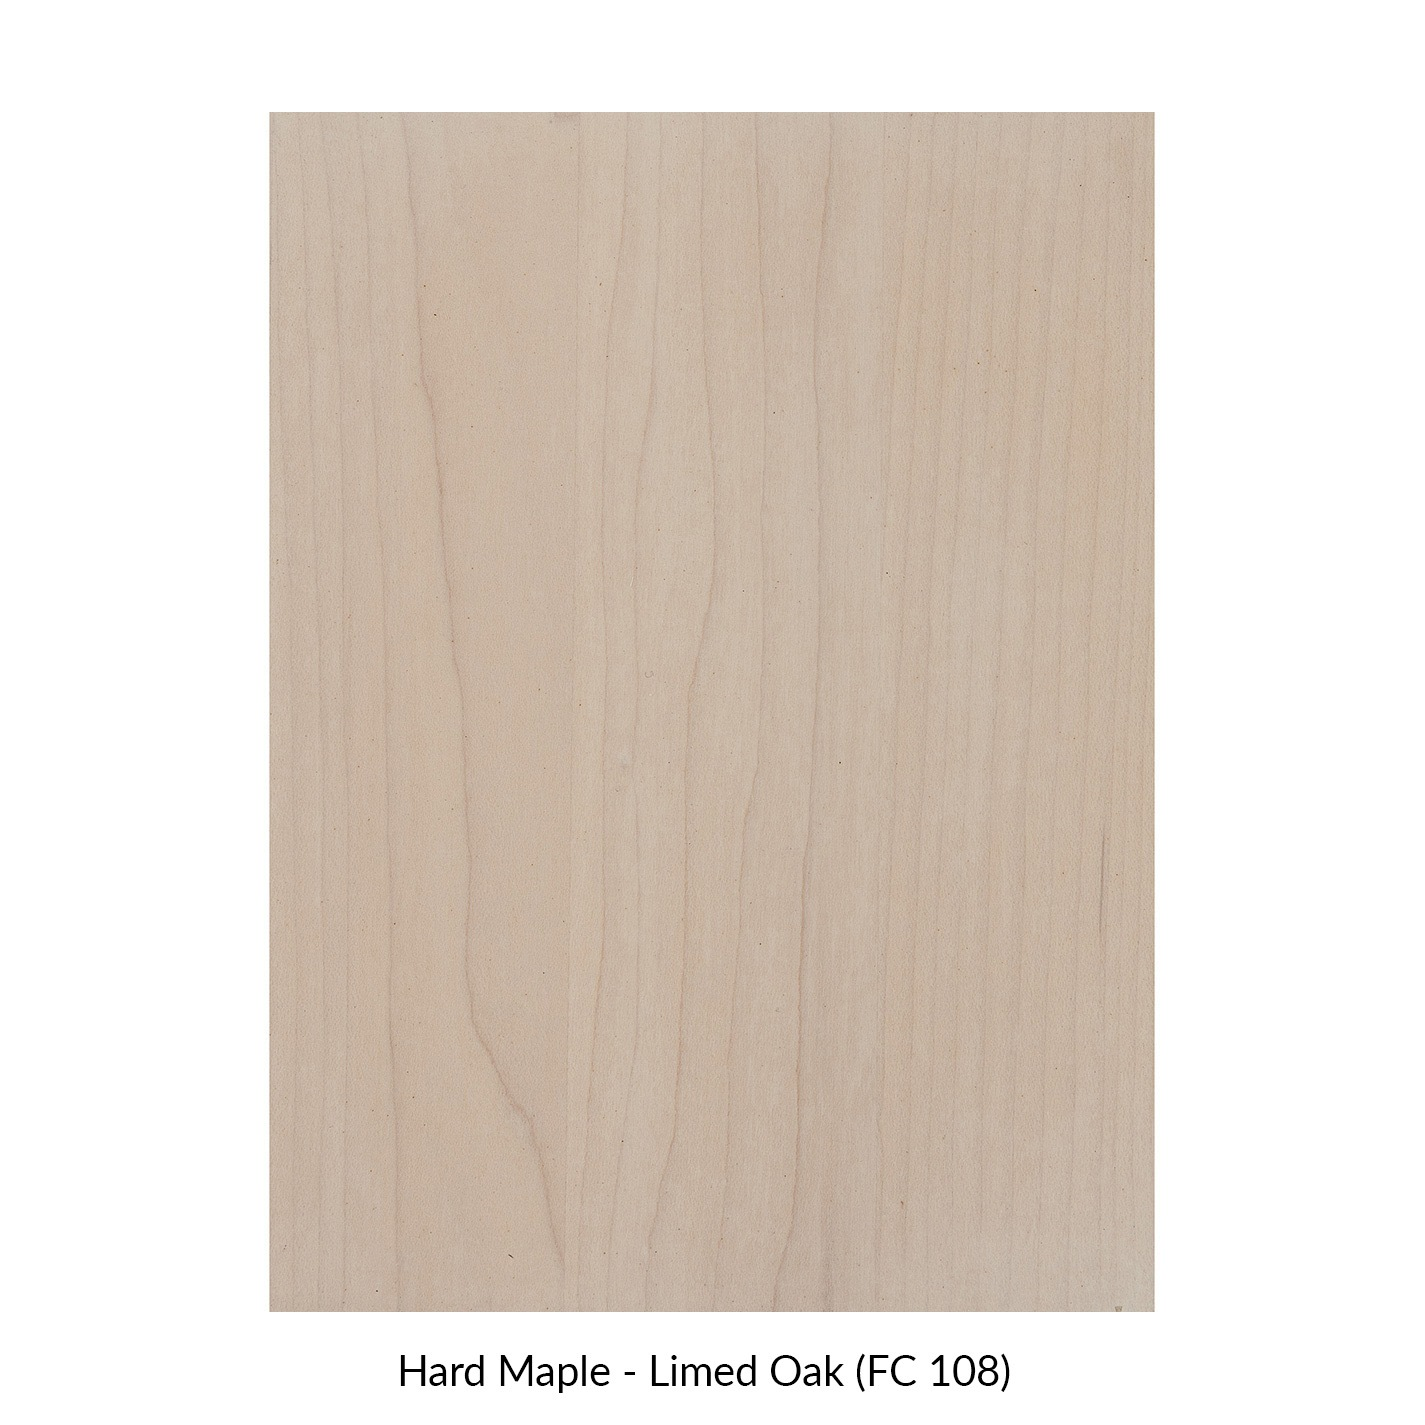 spectrum-hard-maple-limed-oak-fc-108.jpg